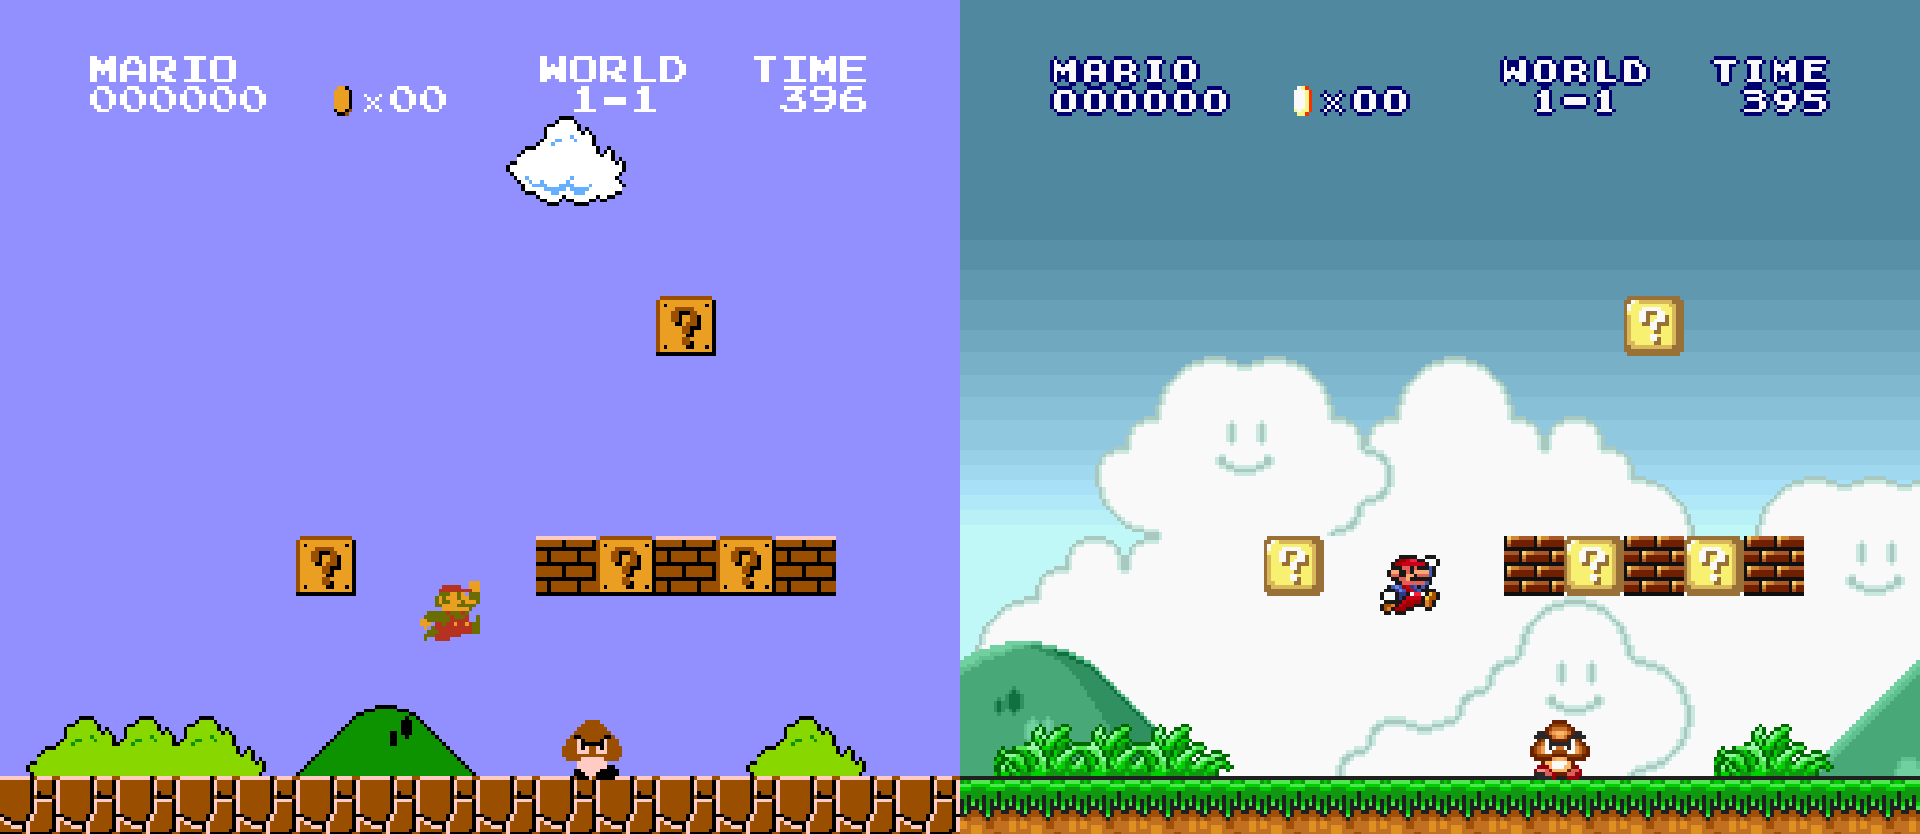 Super-Mario-All-Stars-Spot-the-difference-between-the-upgrades